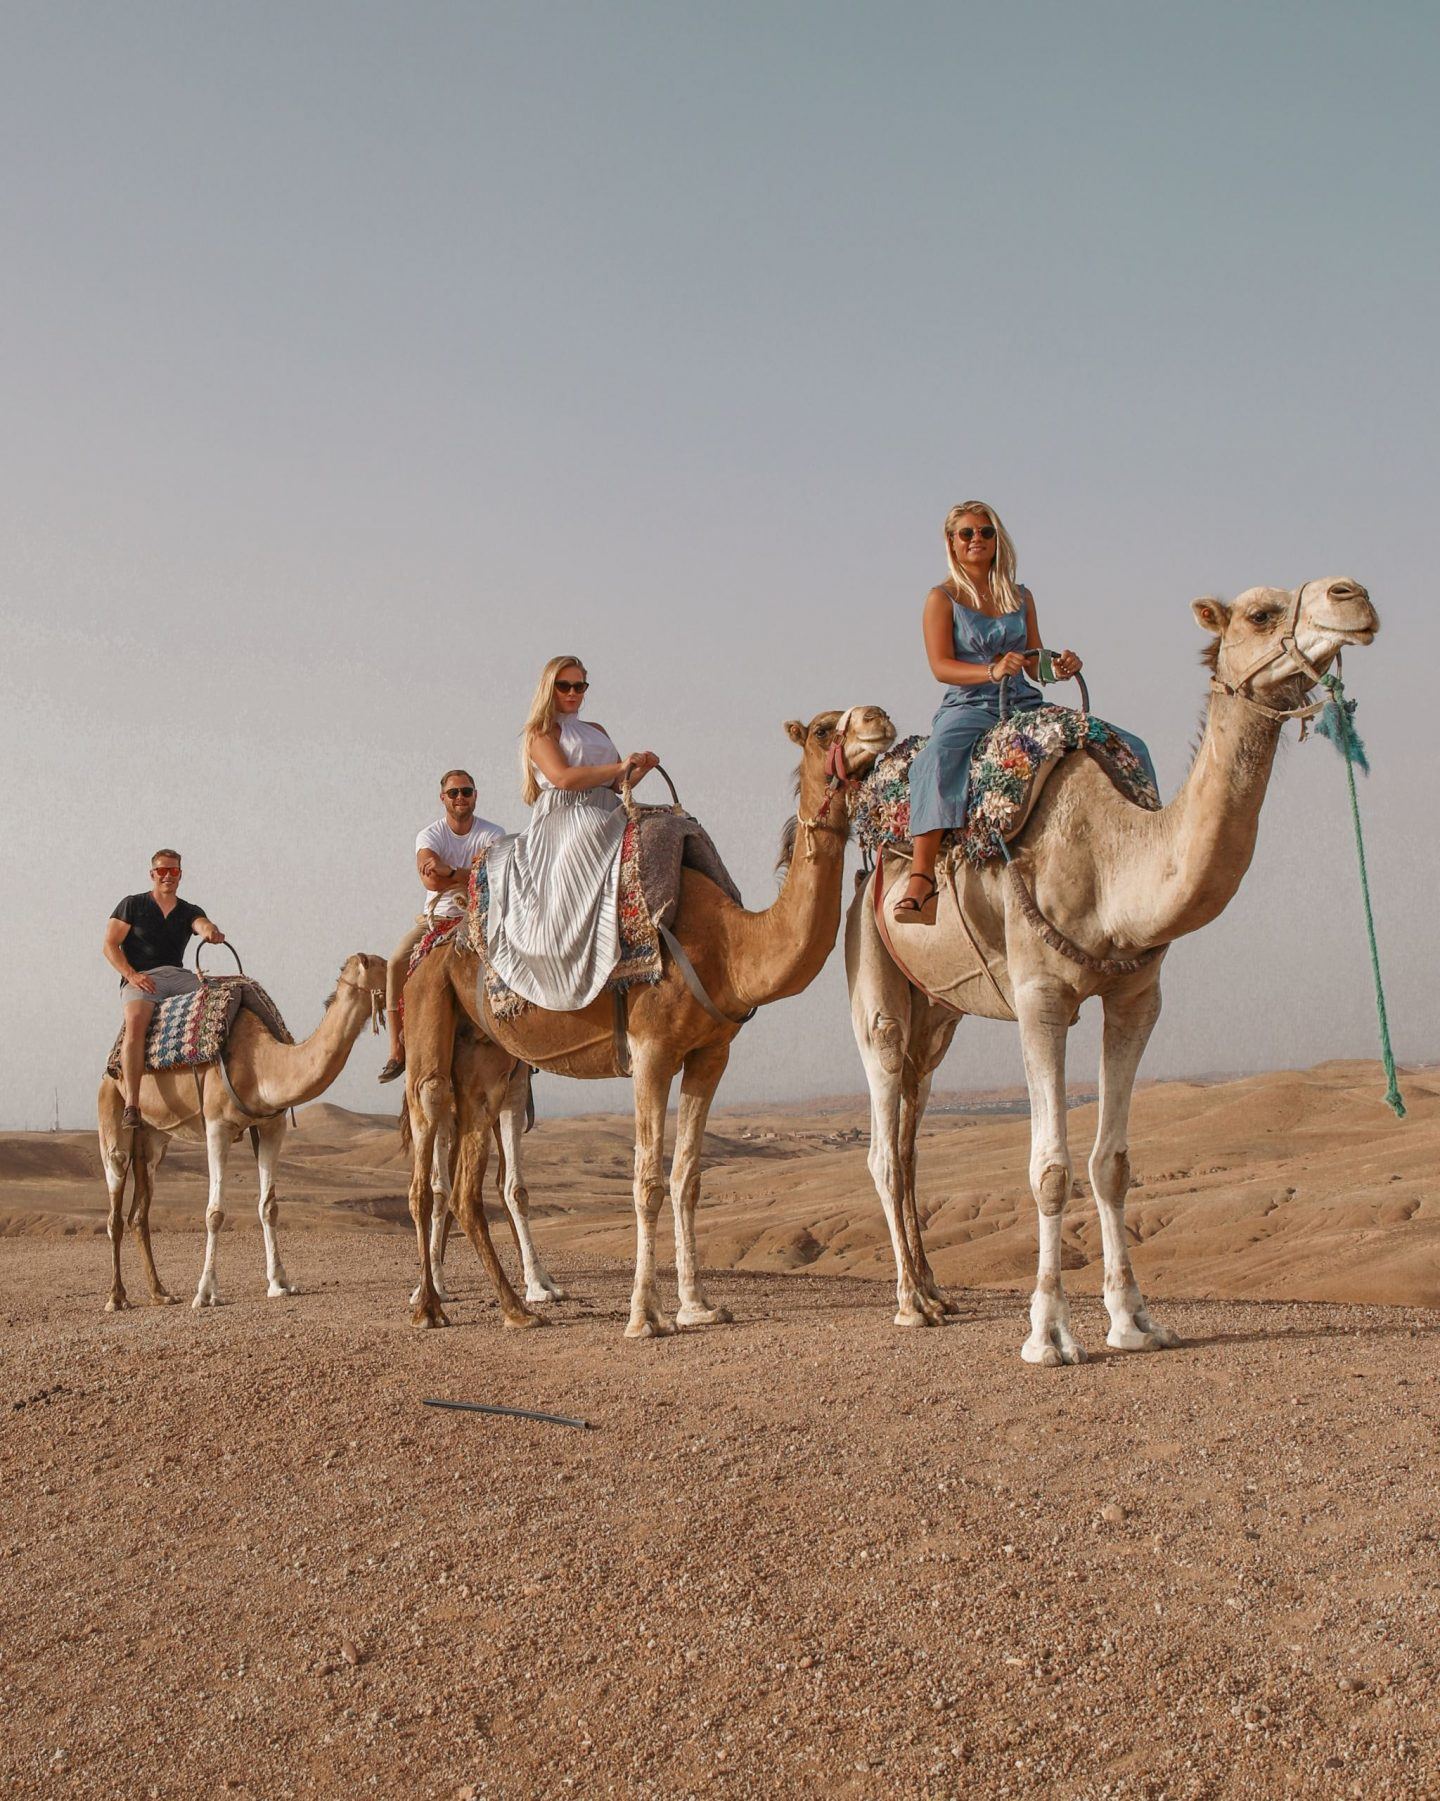 Marrakech – What to see, eat and do!